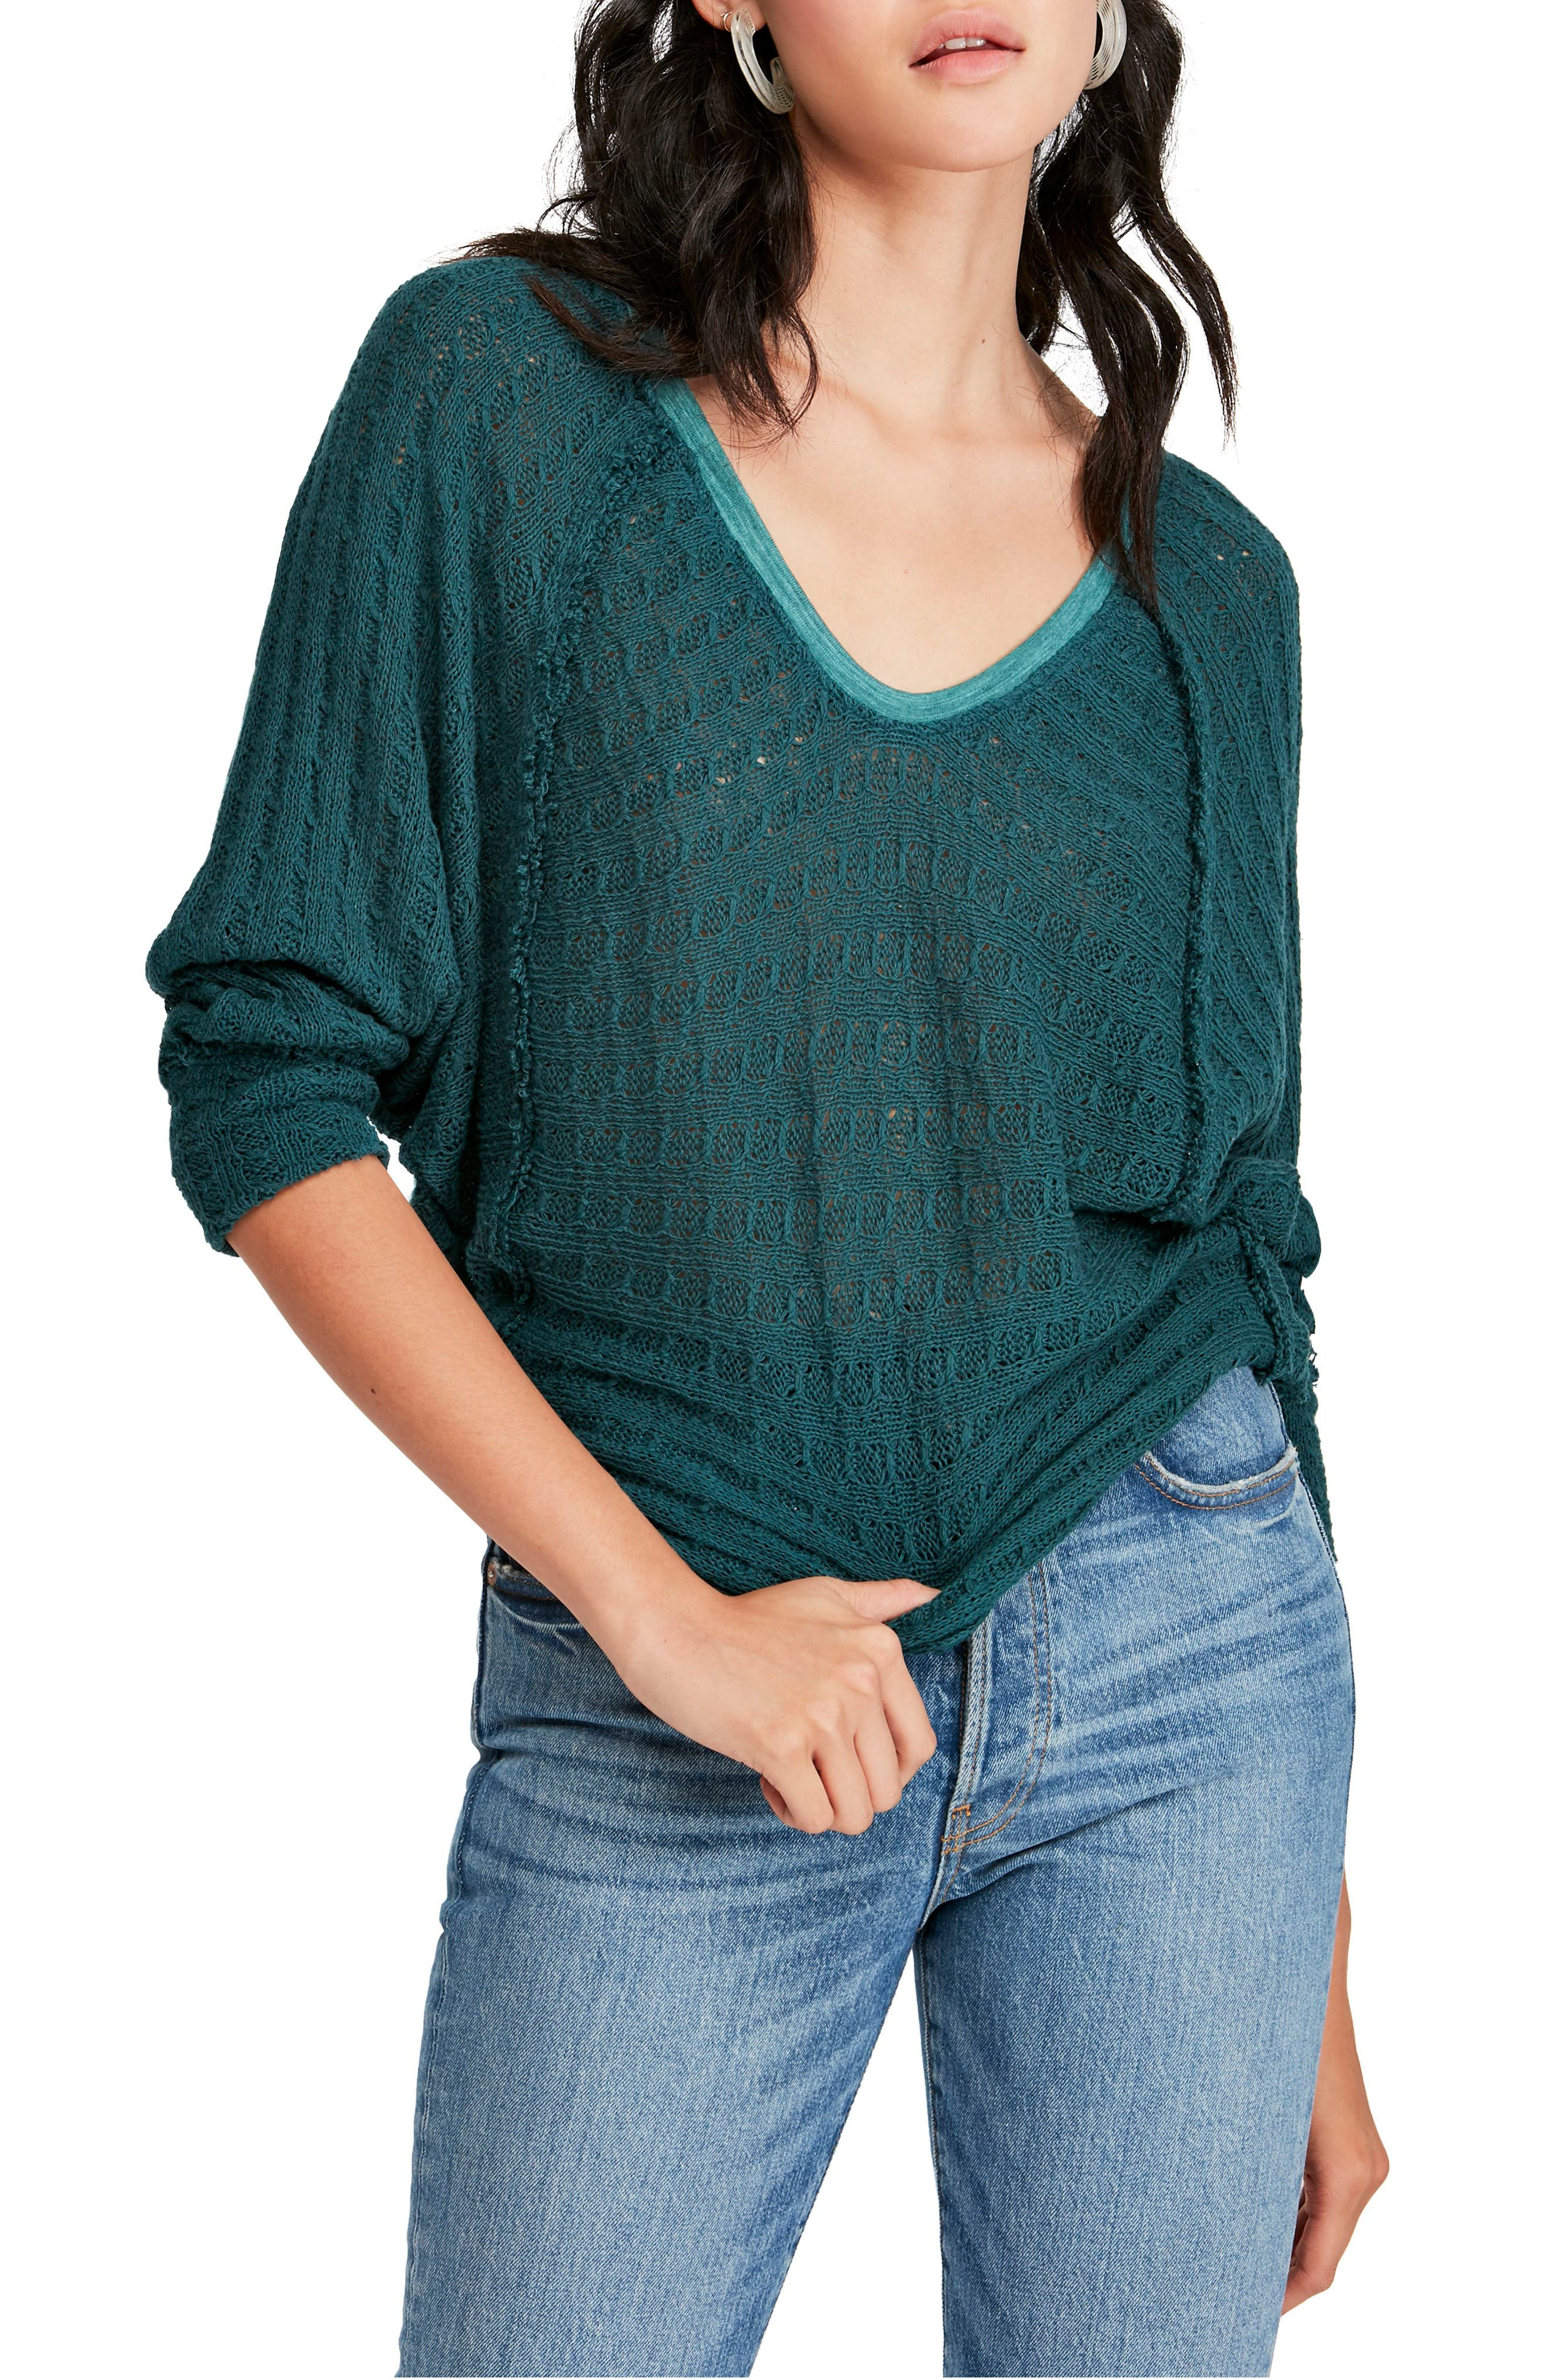 FREE PEOPLE, Thien's Hacci Top, Main thumbnail 1, color, TURQUOISE